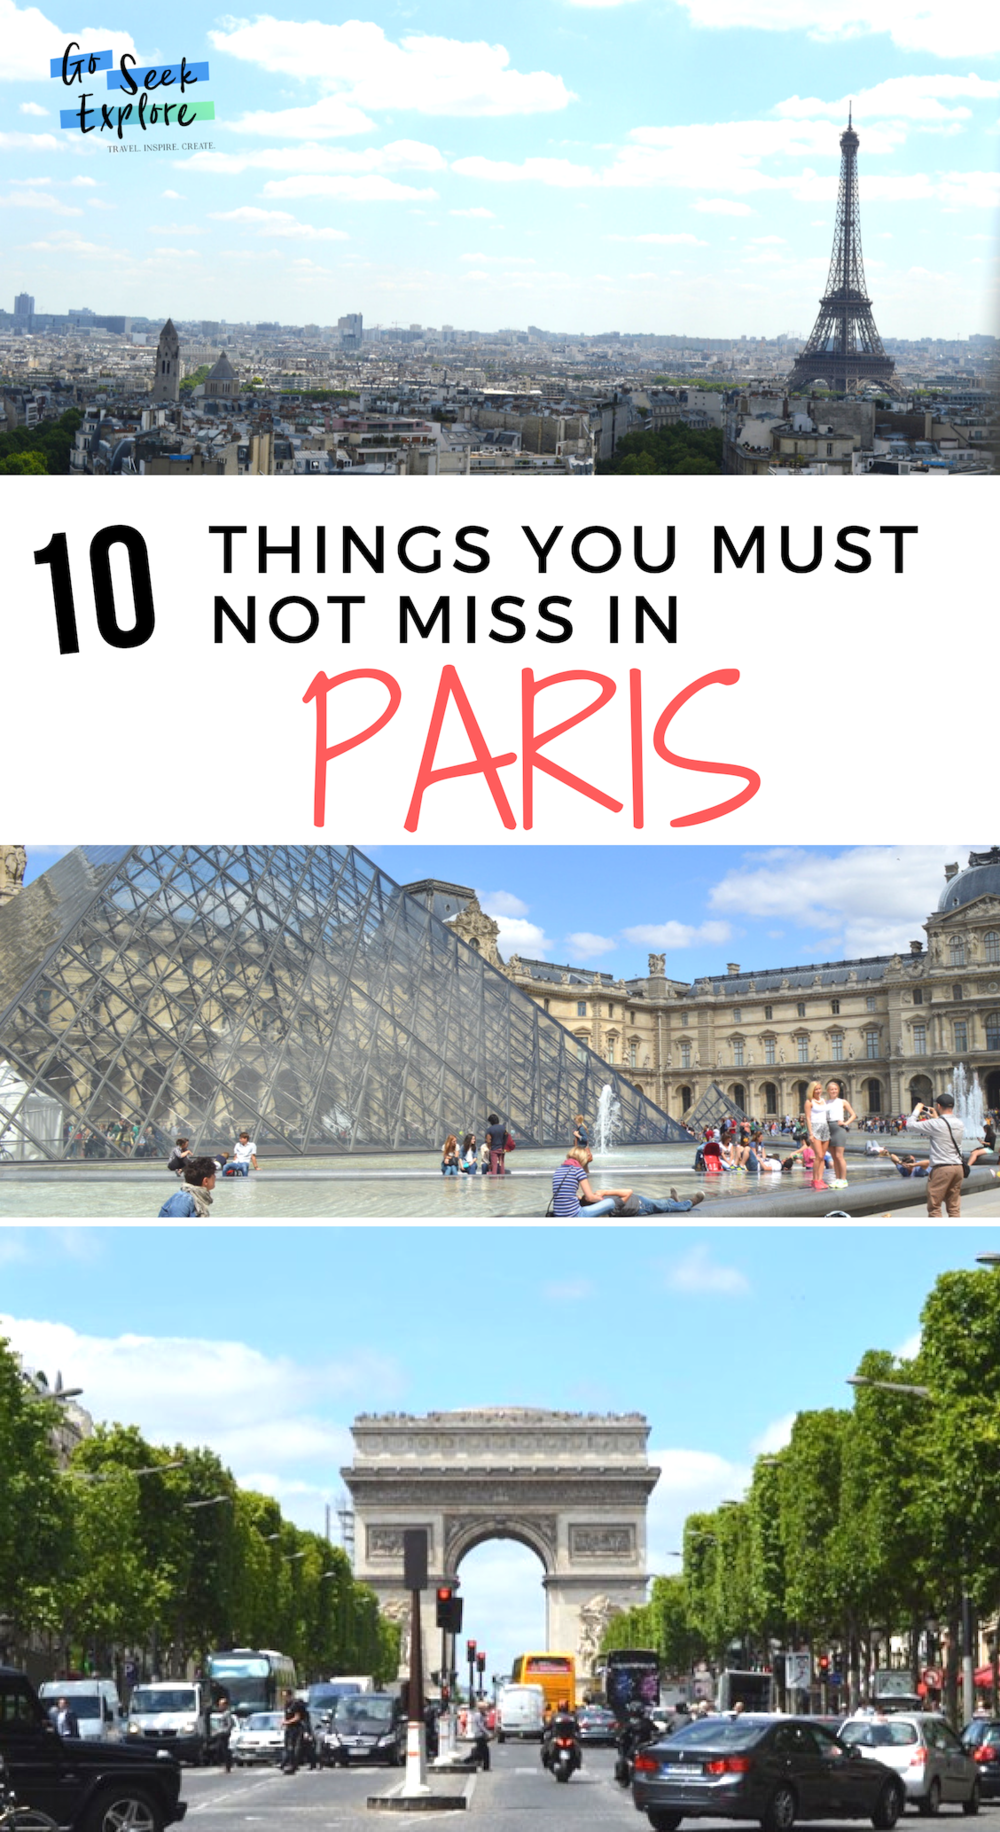 Paris, France - this article lists 10 amazing things you must not miss in Paris! Have you planned your trip yet? / goseekexplore.com